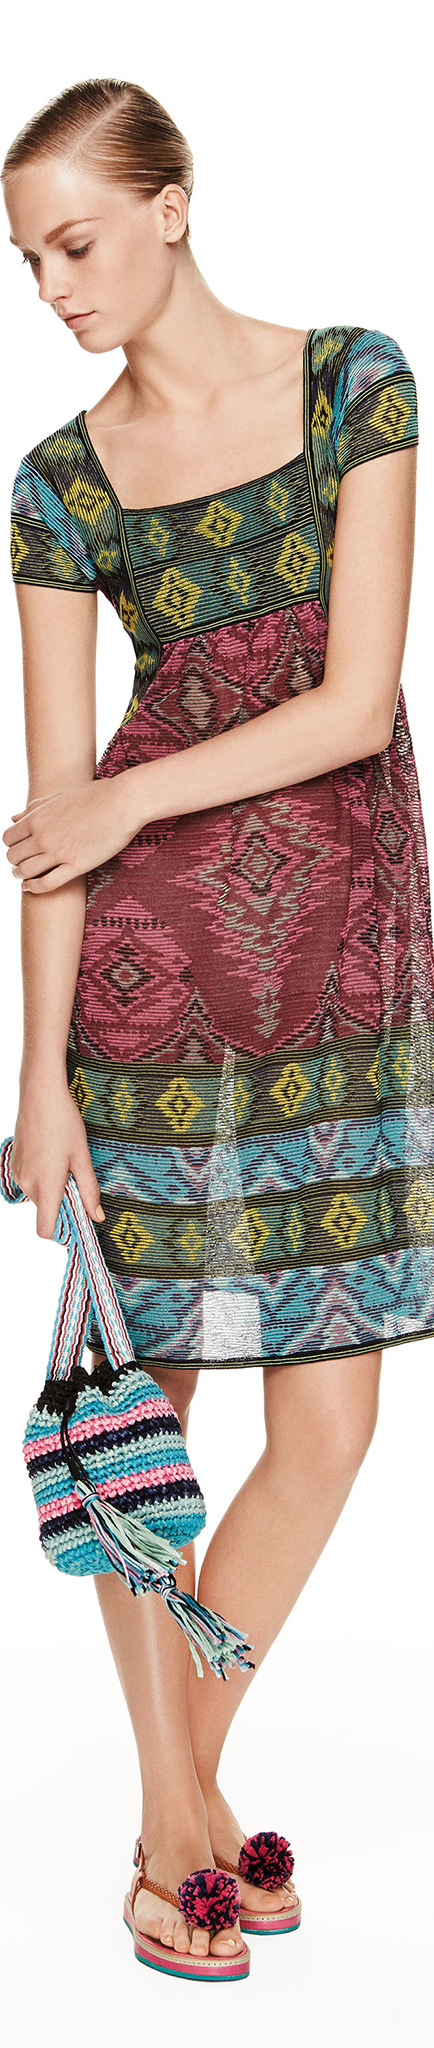 M Missoni Spring 2015 | The House of Beccaria~